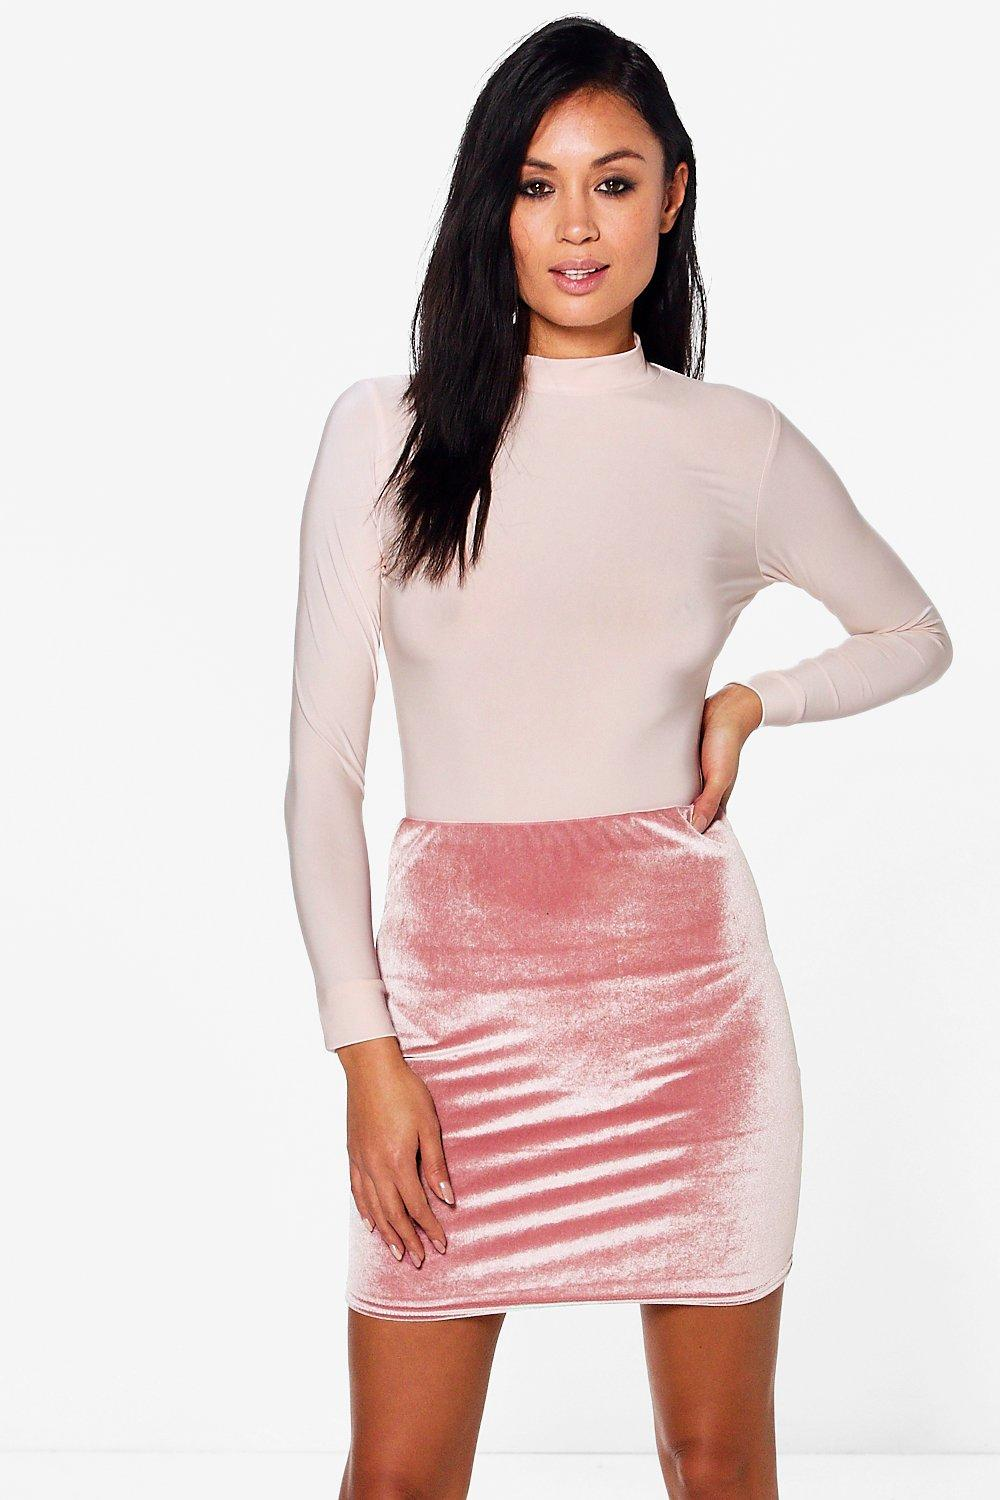 Huda Roll Neck Slinky Body Velvet Skirt Co-Ord